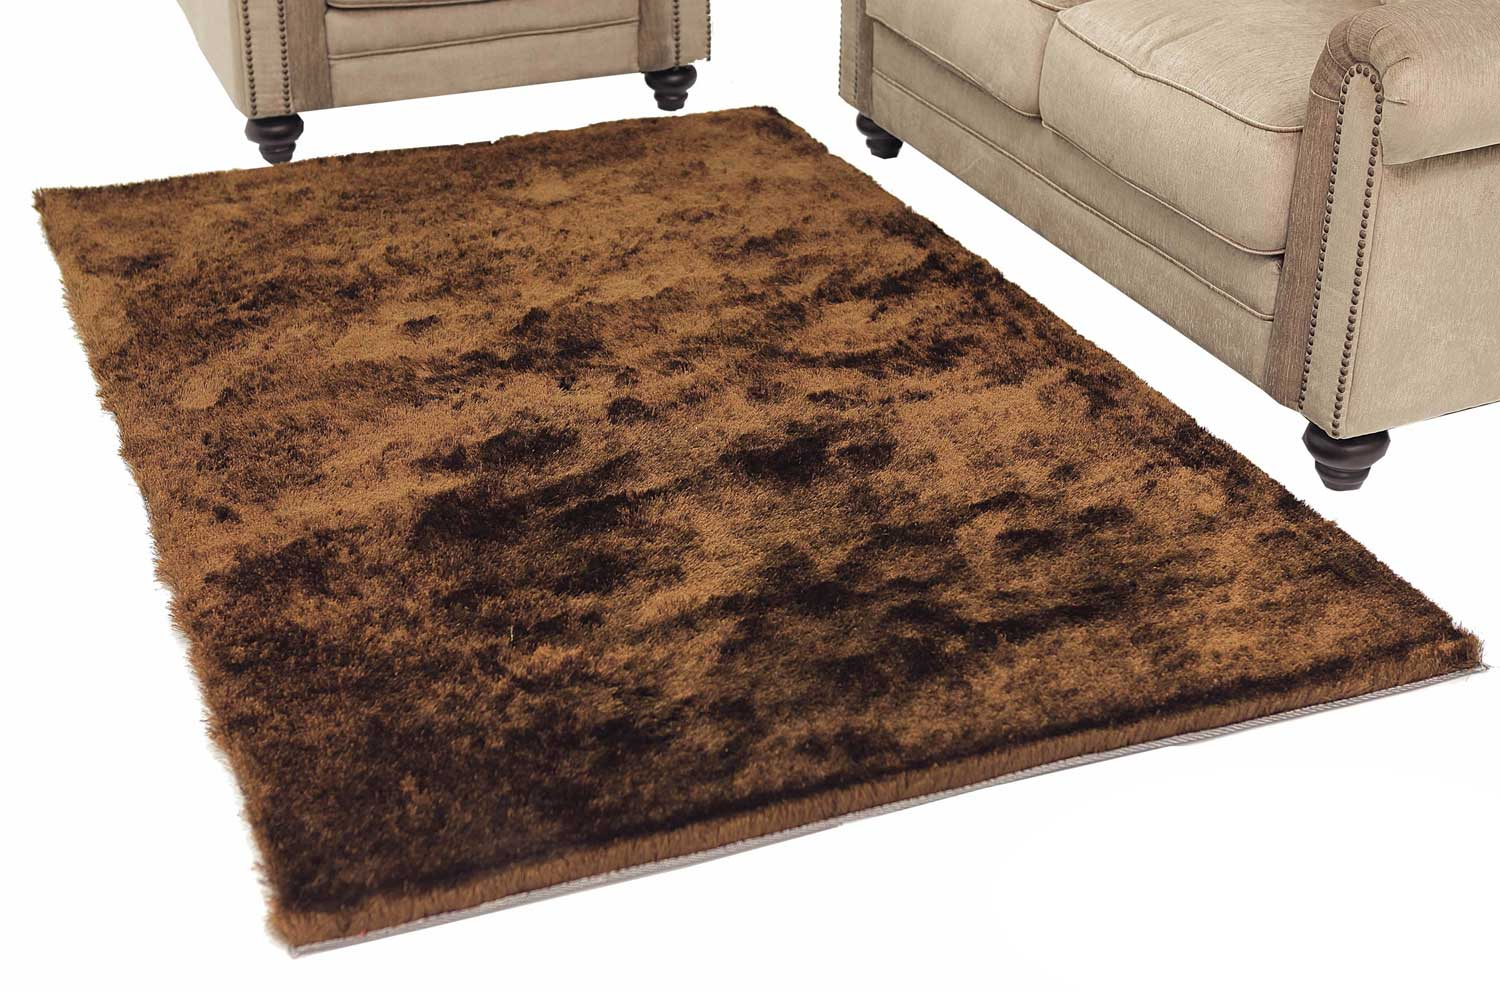 Abbyson Living AR-YS-TS012 Shag Rug 5 x 8-Feet - Multi Tone Brown